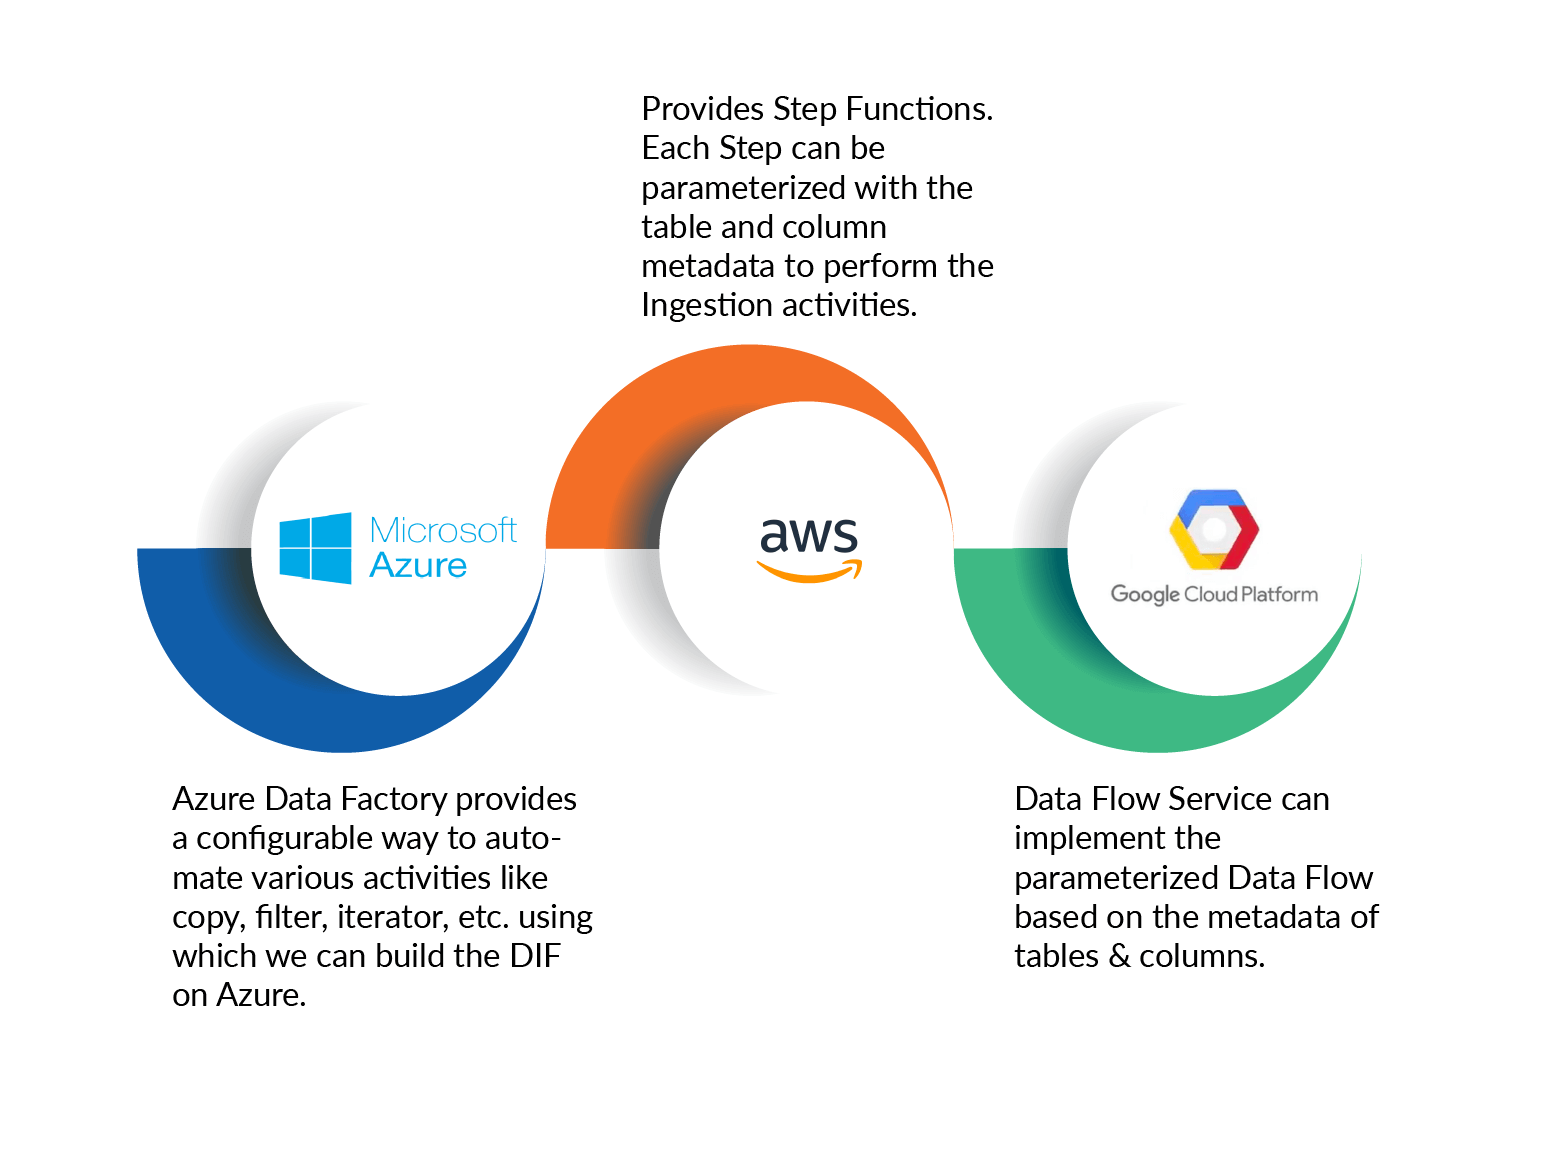 Cloud Native Data Lakes, using the native services